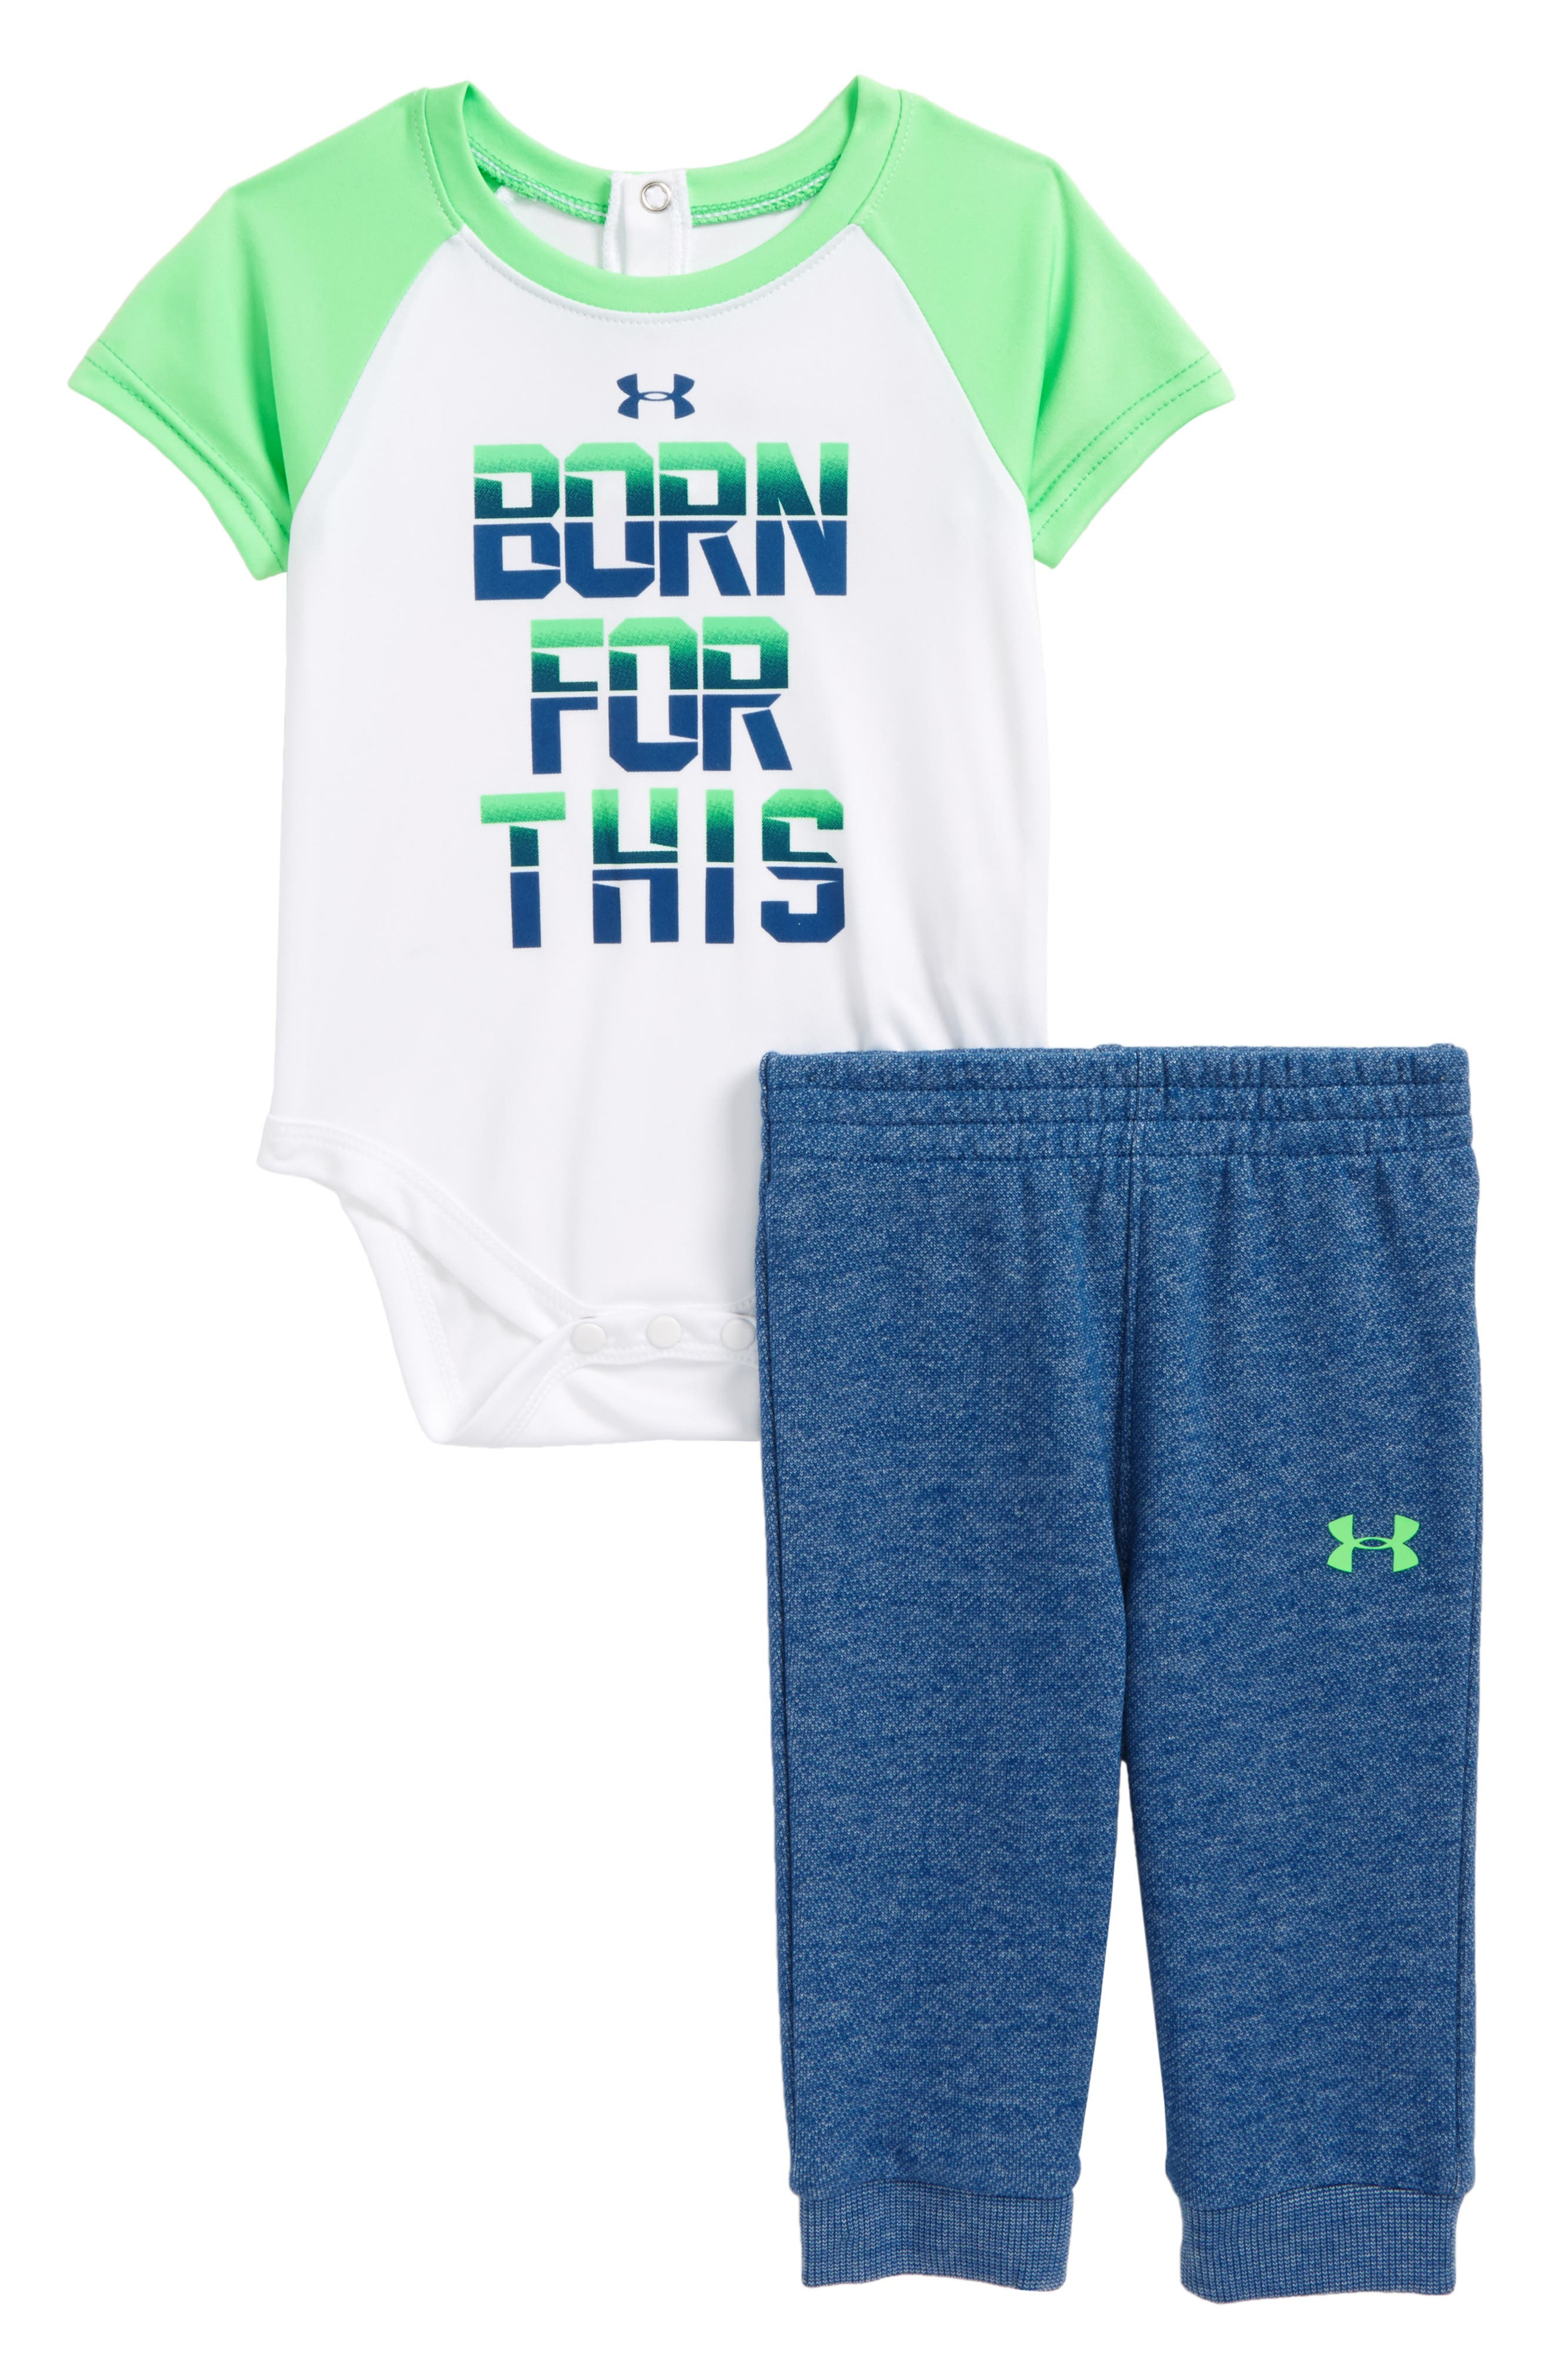 Main Image - Under Armour Born For This Bodysuit & Pants Set (Baby Boys)